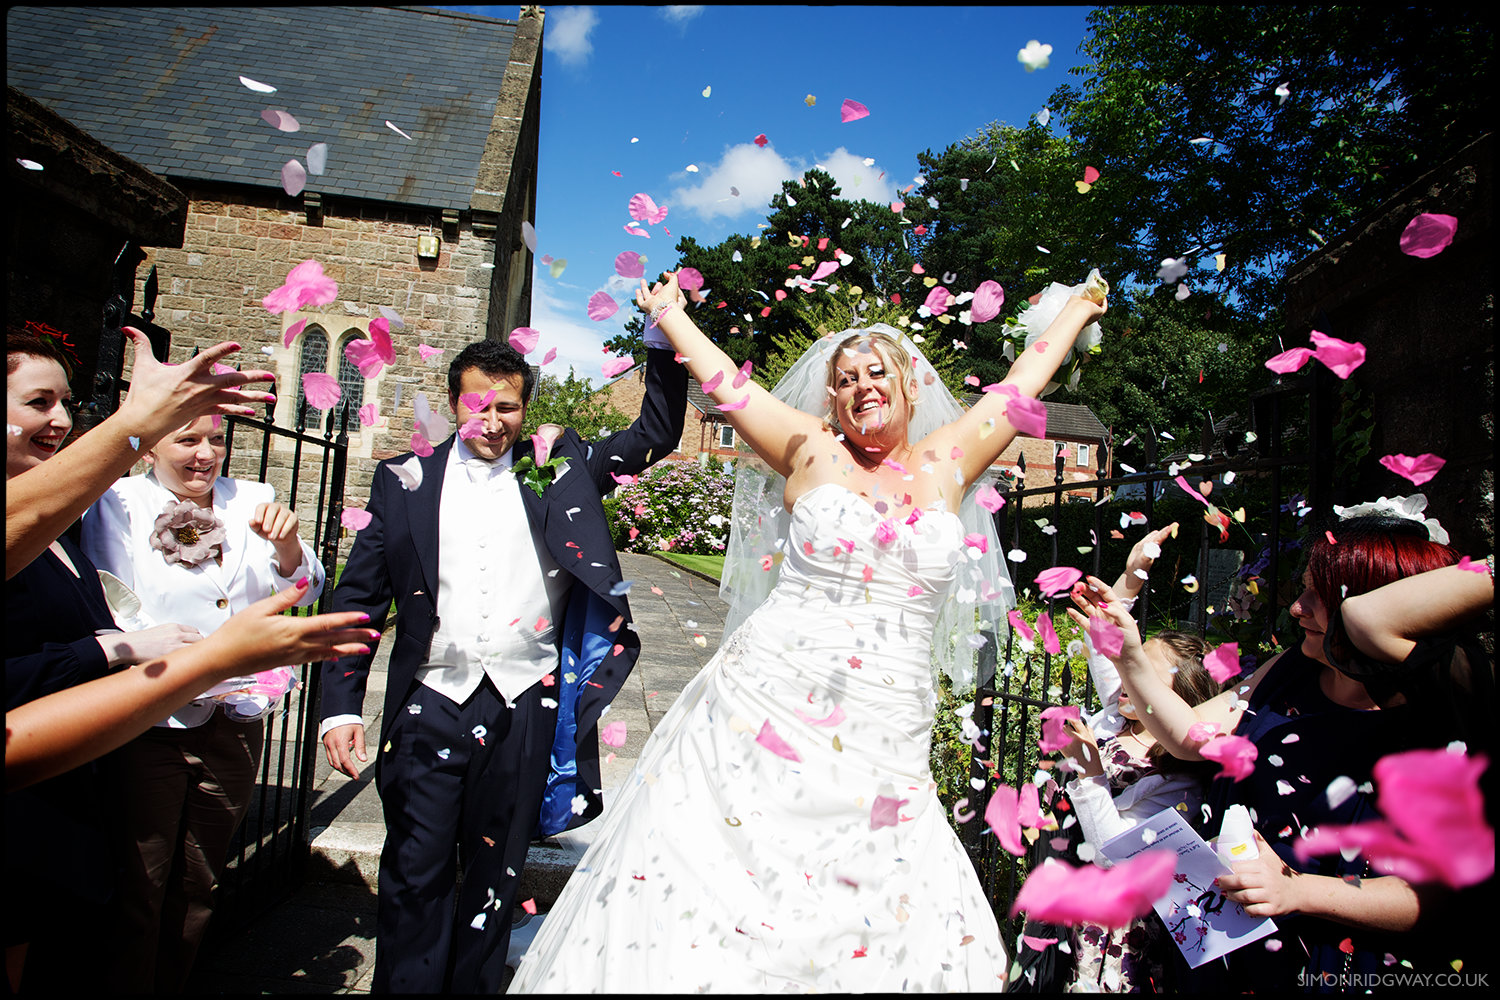 Reportage Wedding Photography, Tongwynlais, South Wales